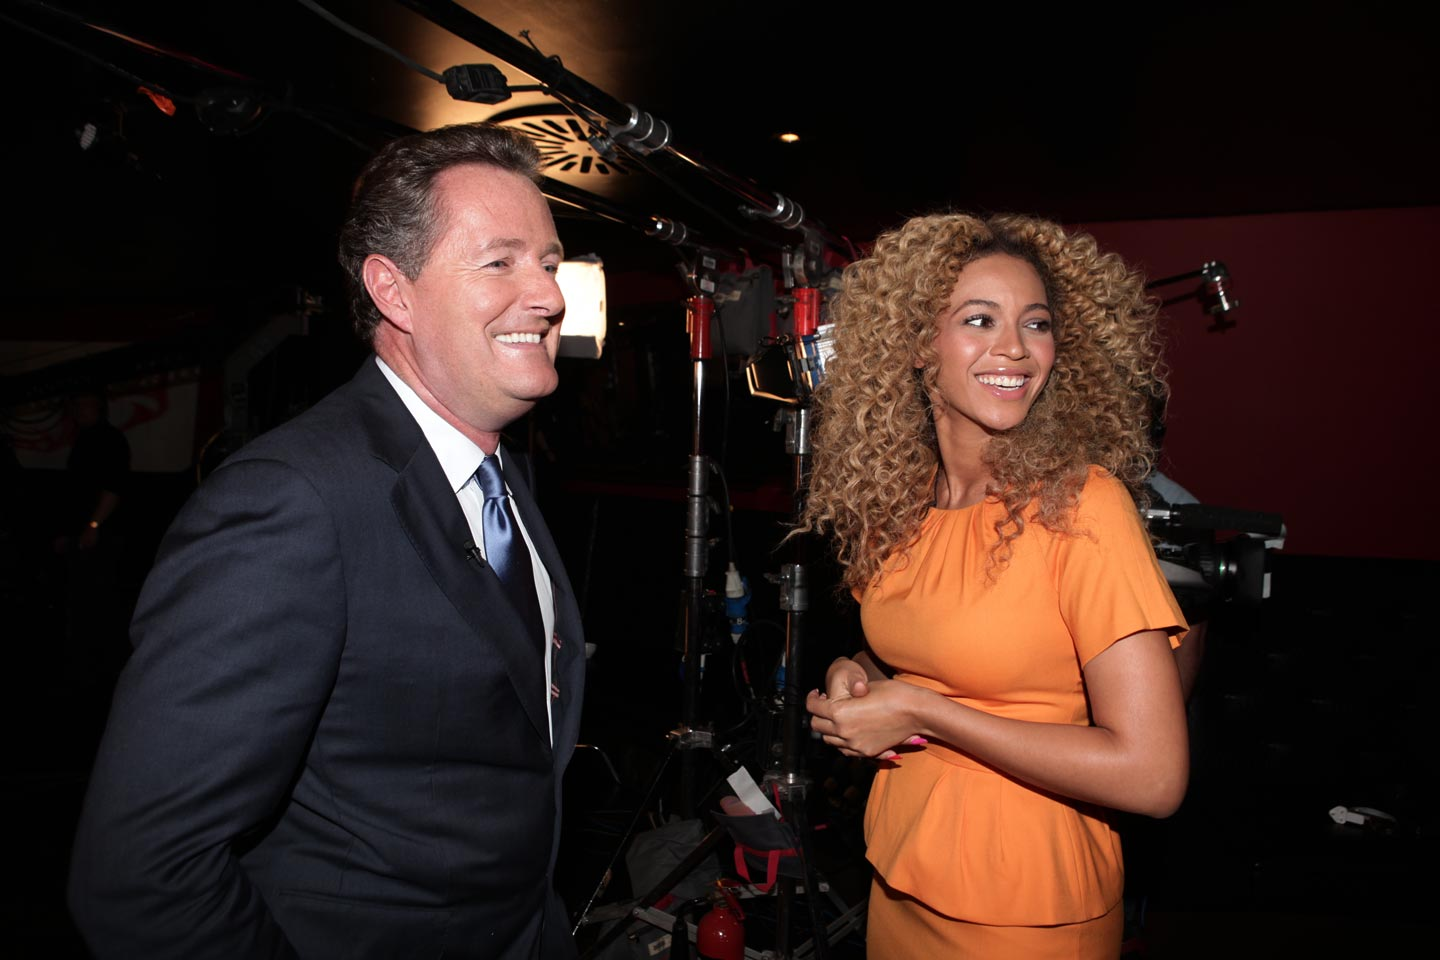 PIERS AND BEYONCE